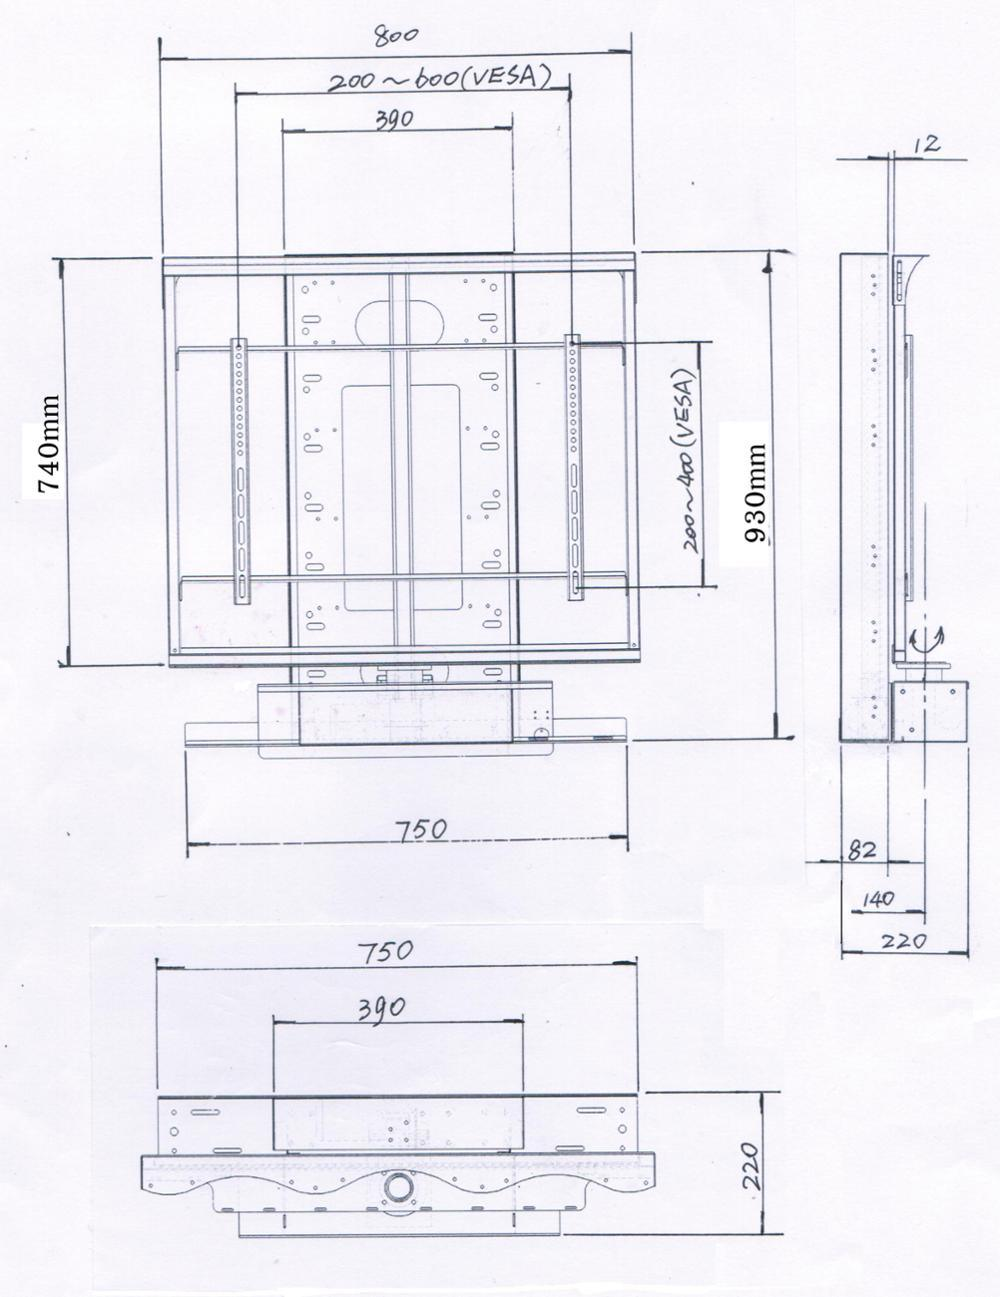 China Motorized Tv Stand For 26 70tvs Ir Remote Control Lift Circuit Diagram Vesa Up To 600400